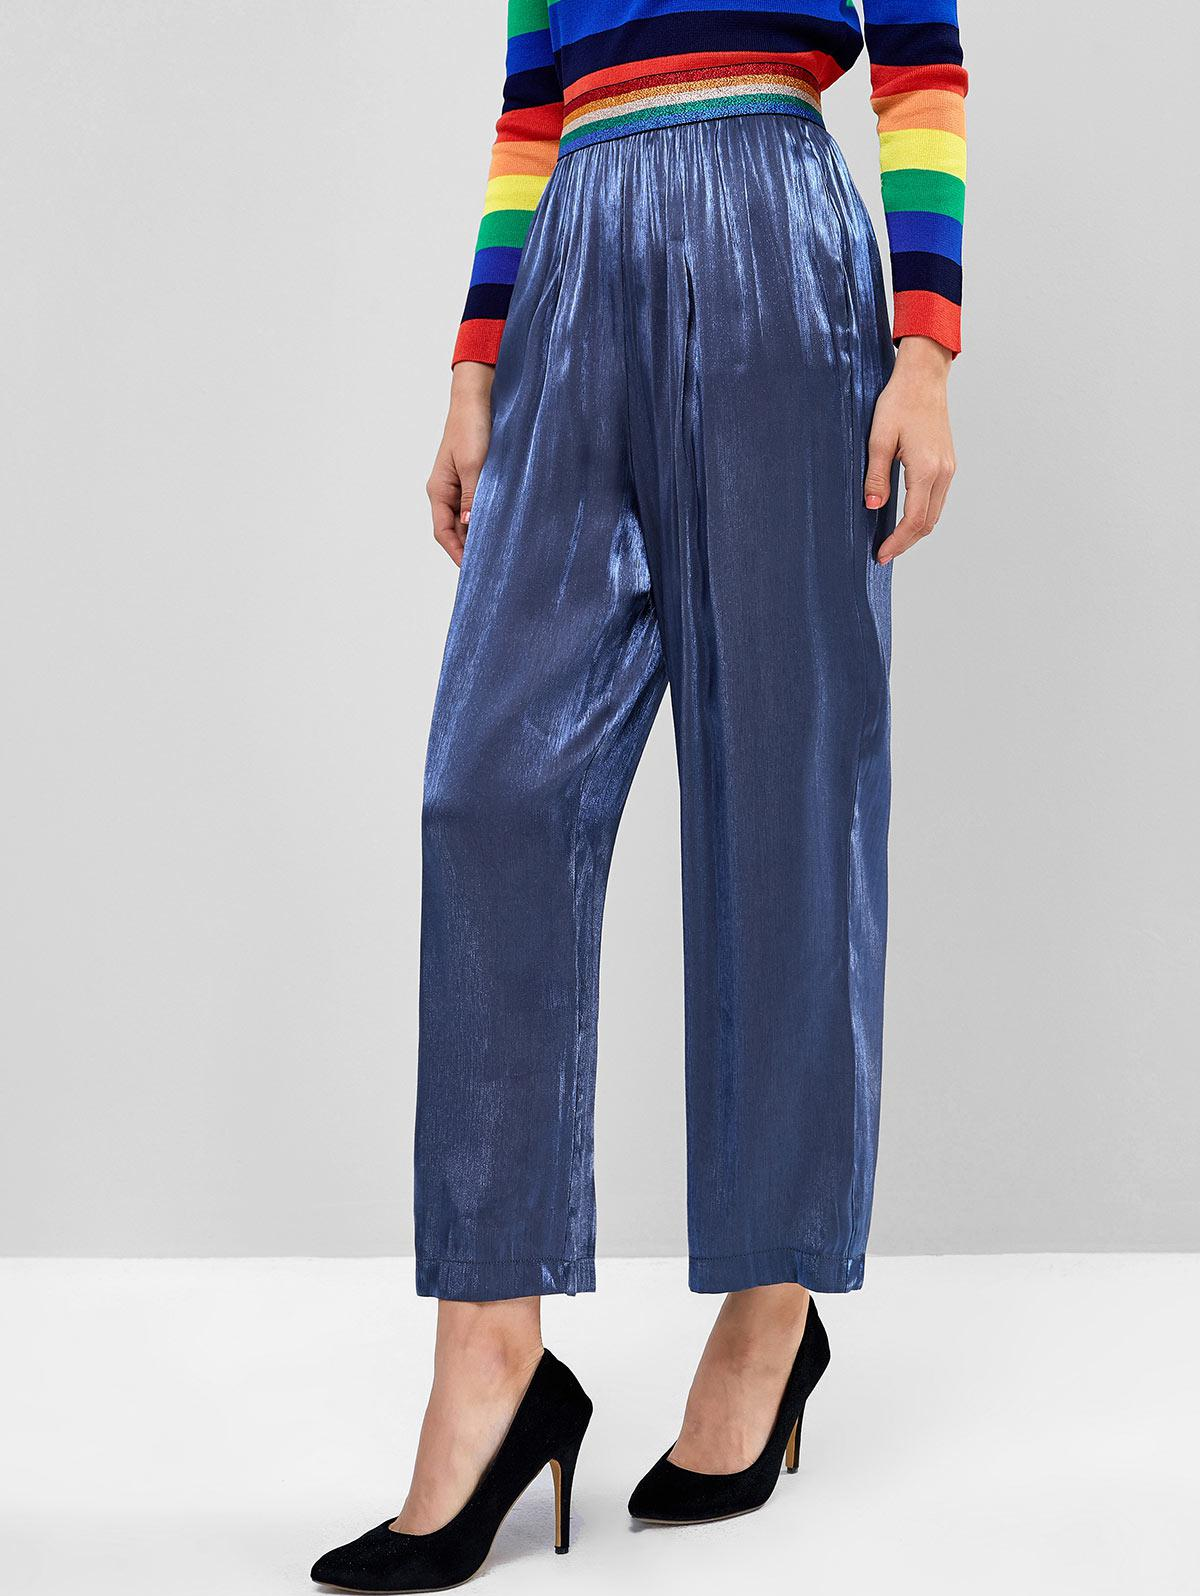 Metallic Thread Rainbow Striped Wide Leg Palazzo Pants фото